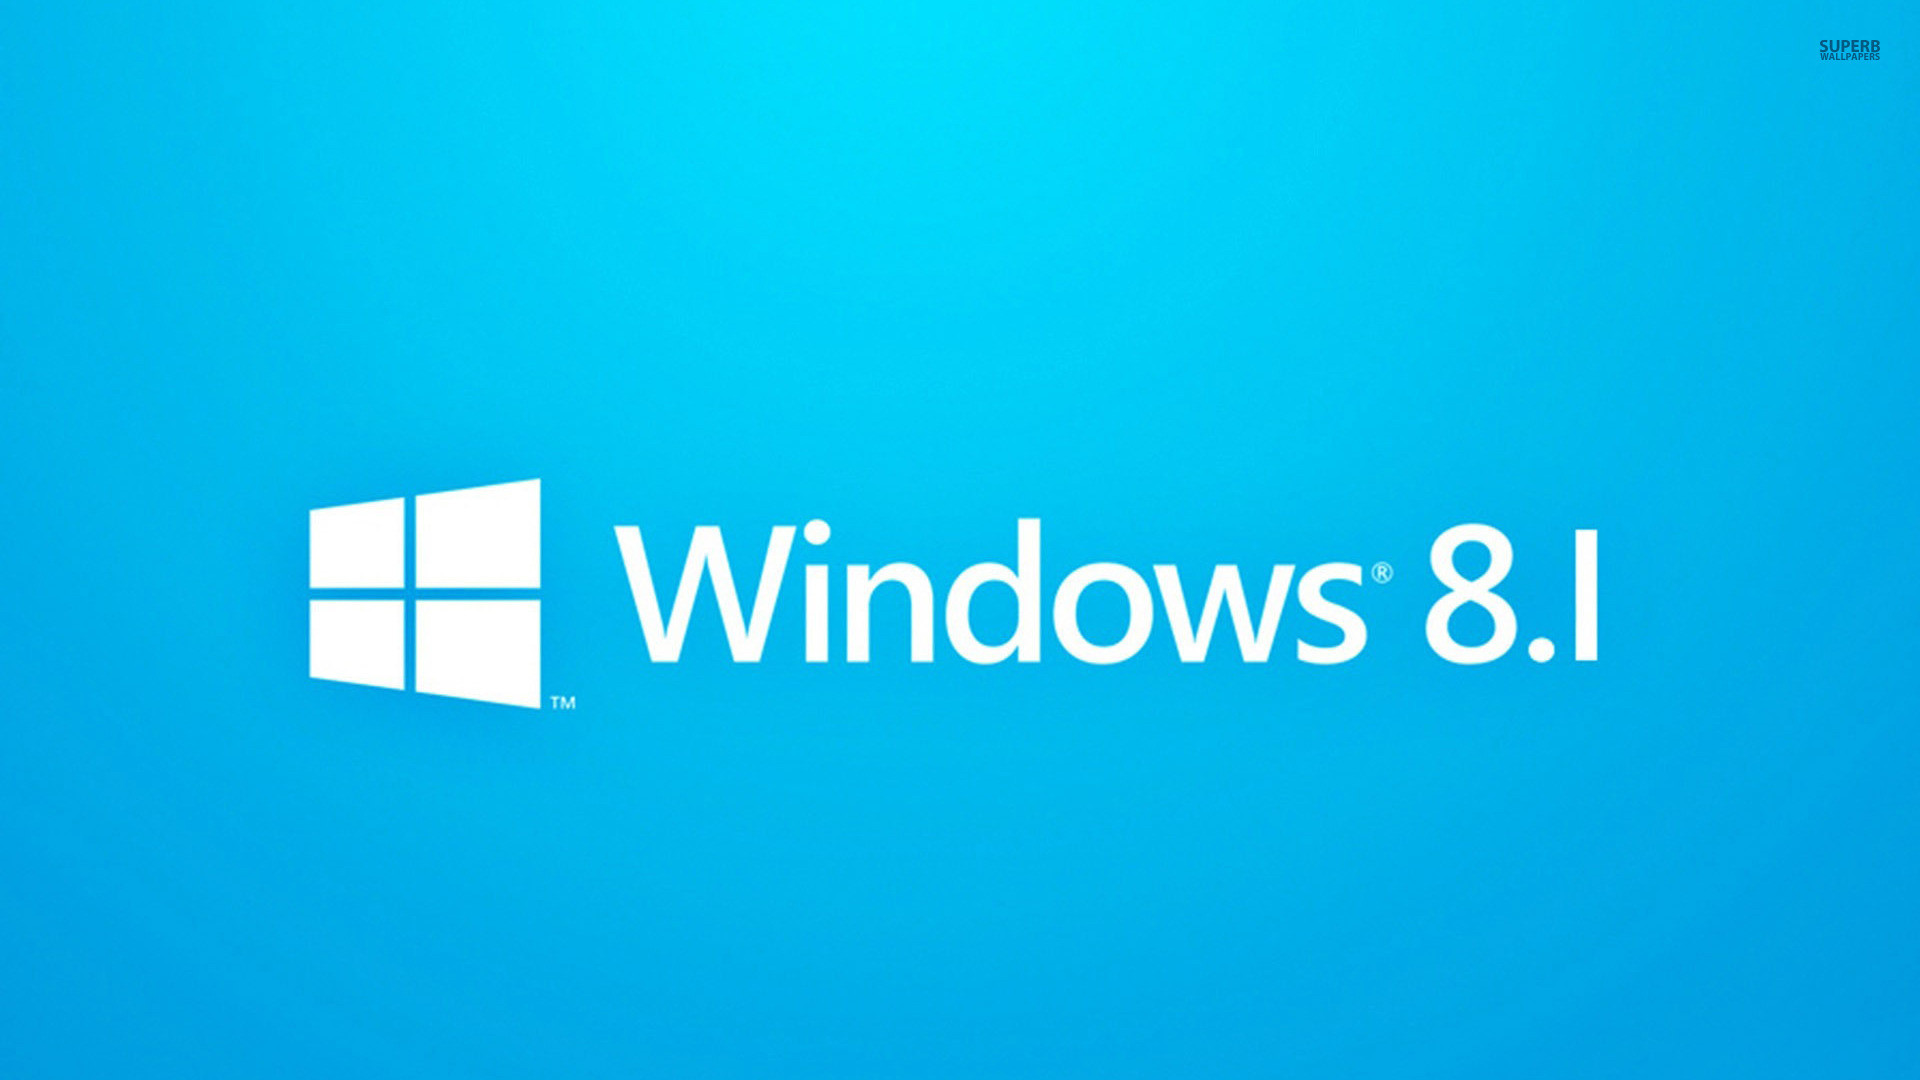 1920x1080 Light Blue Windows 81 HD Wallpaper